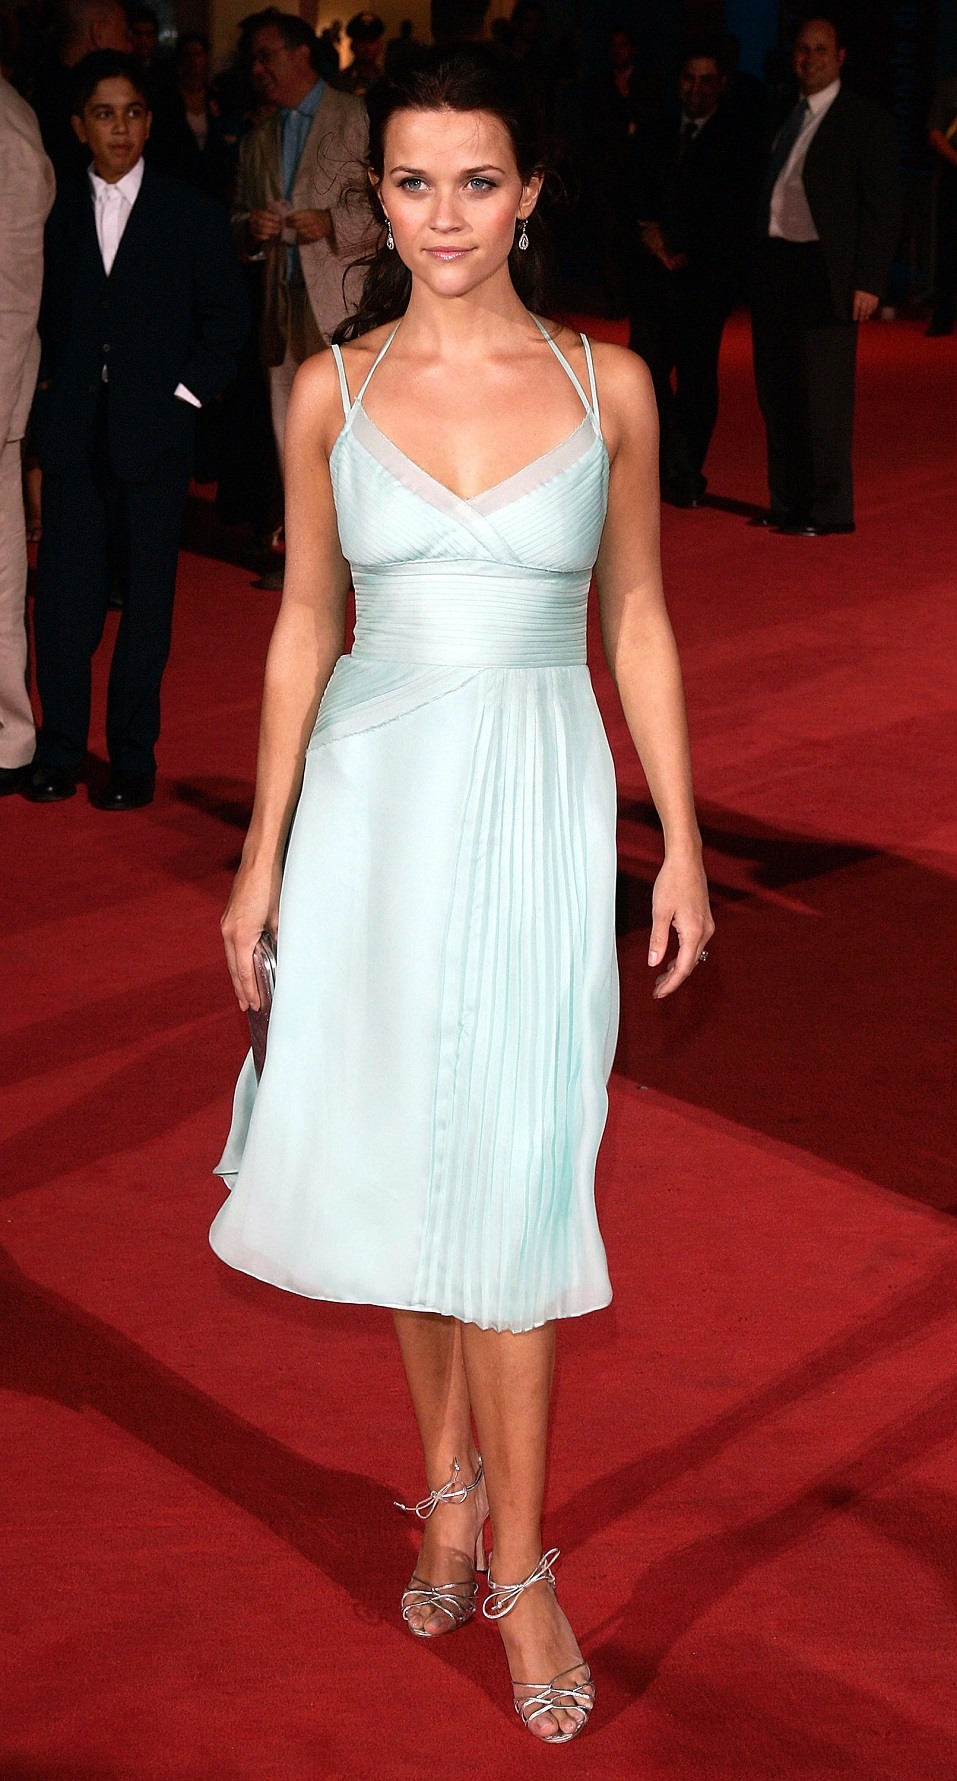 """Actress Reese Witherspoon attends the """"Vanity Fair"""" Premiere at the 61st Venice Film Festival"""